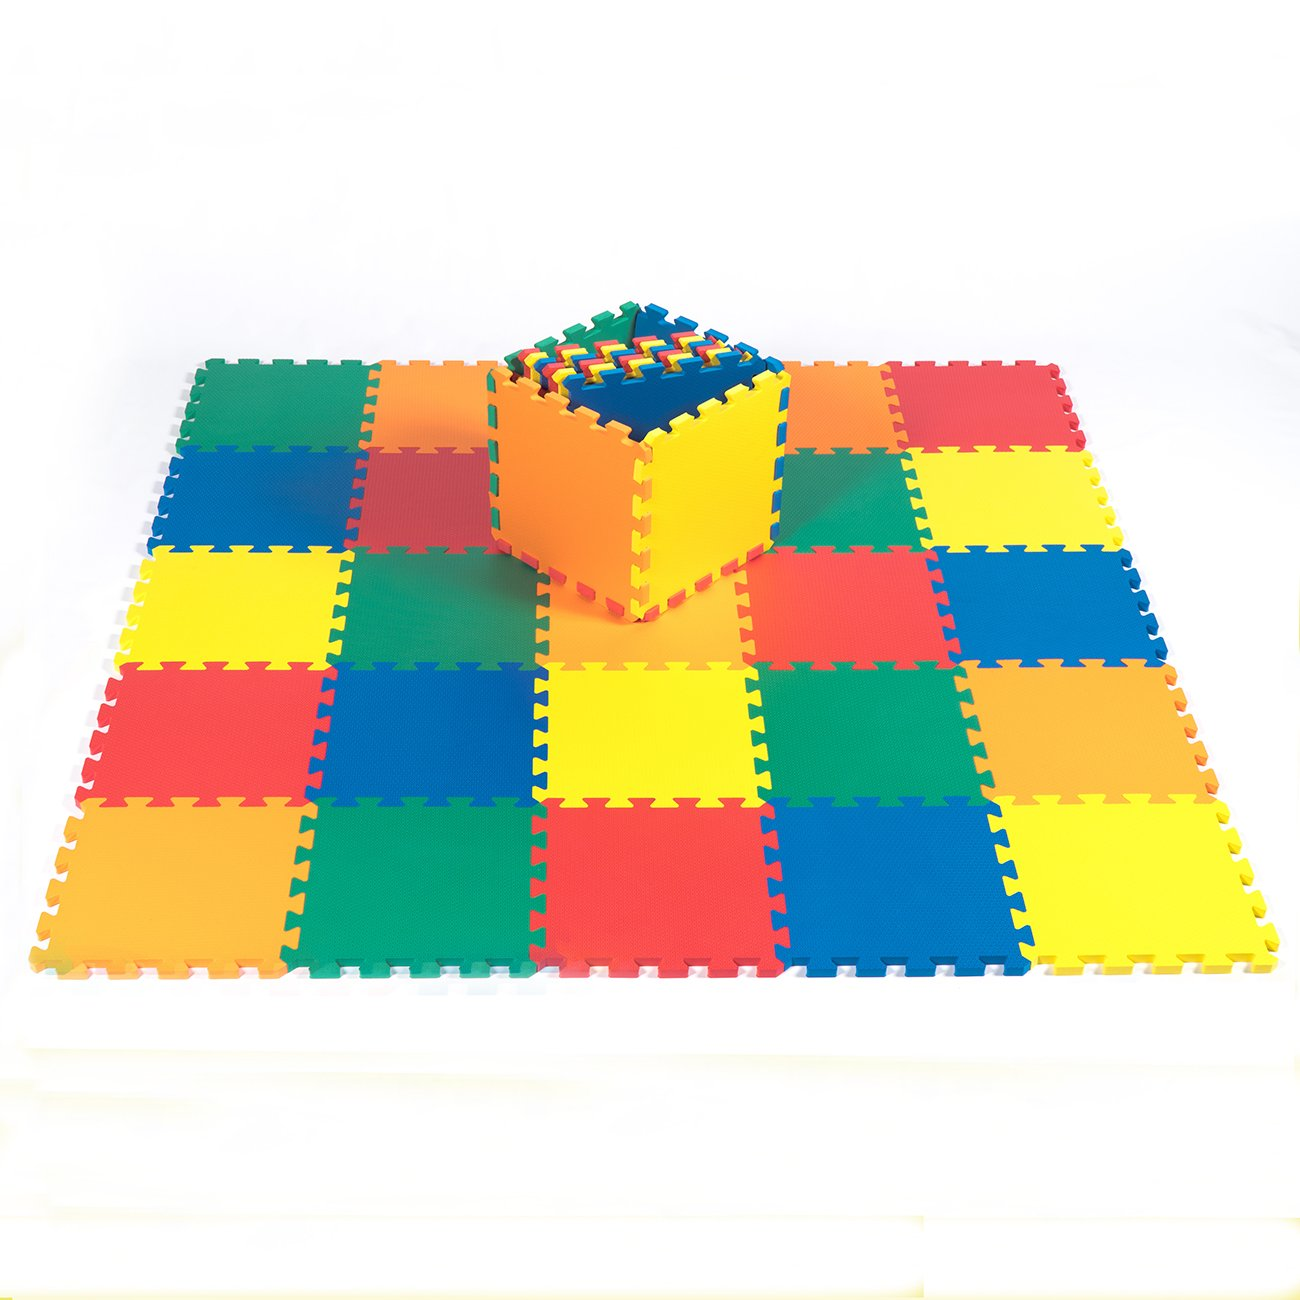 Kidzone 12''x12'' 36 Pcs NON-TOXIC EVA Foam Puzzle Mat,5 Colors Kids Toddlers Baby 1/2'' Thick Made in Taiwan Meet ASTM